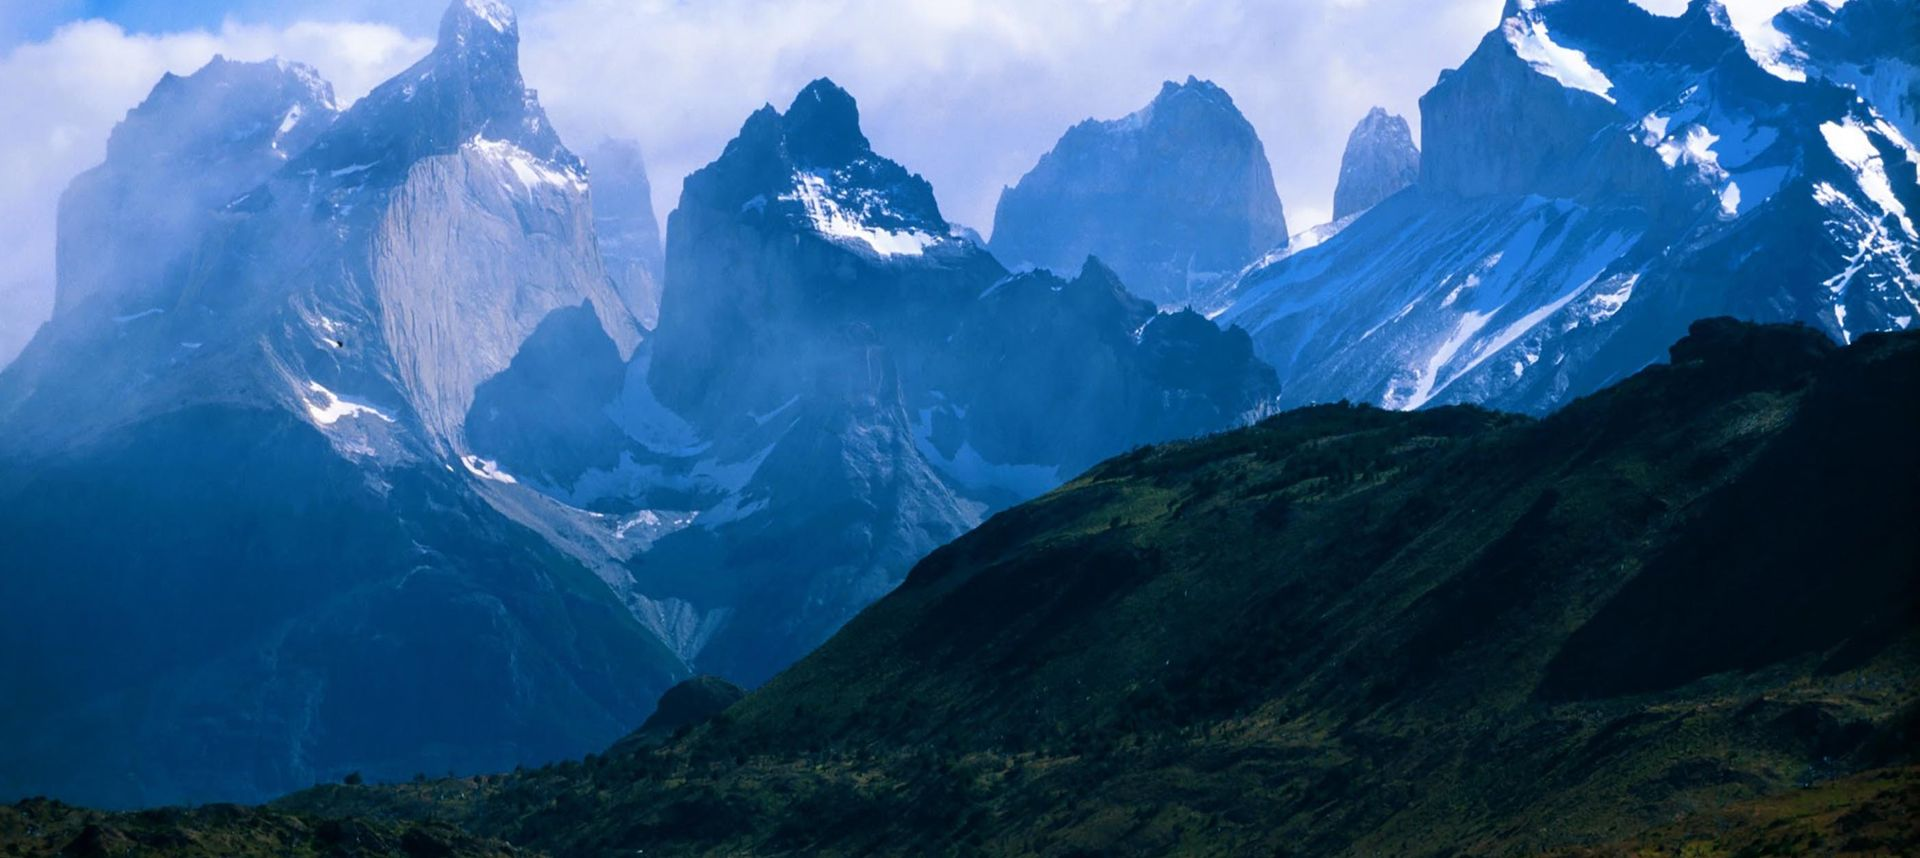 Discover Torres del Paine National Park  in the Chilean Patagonia